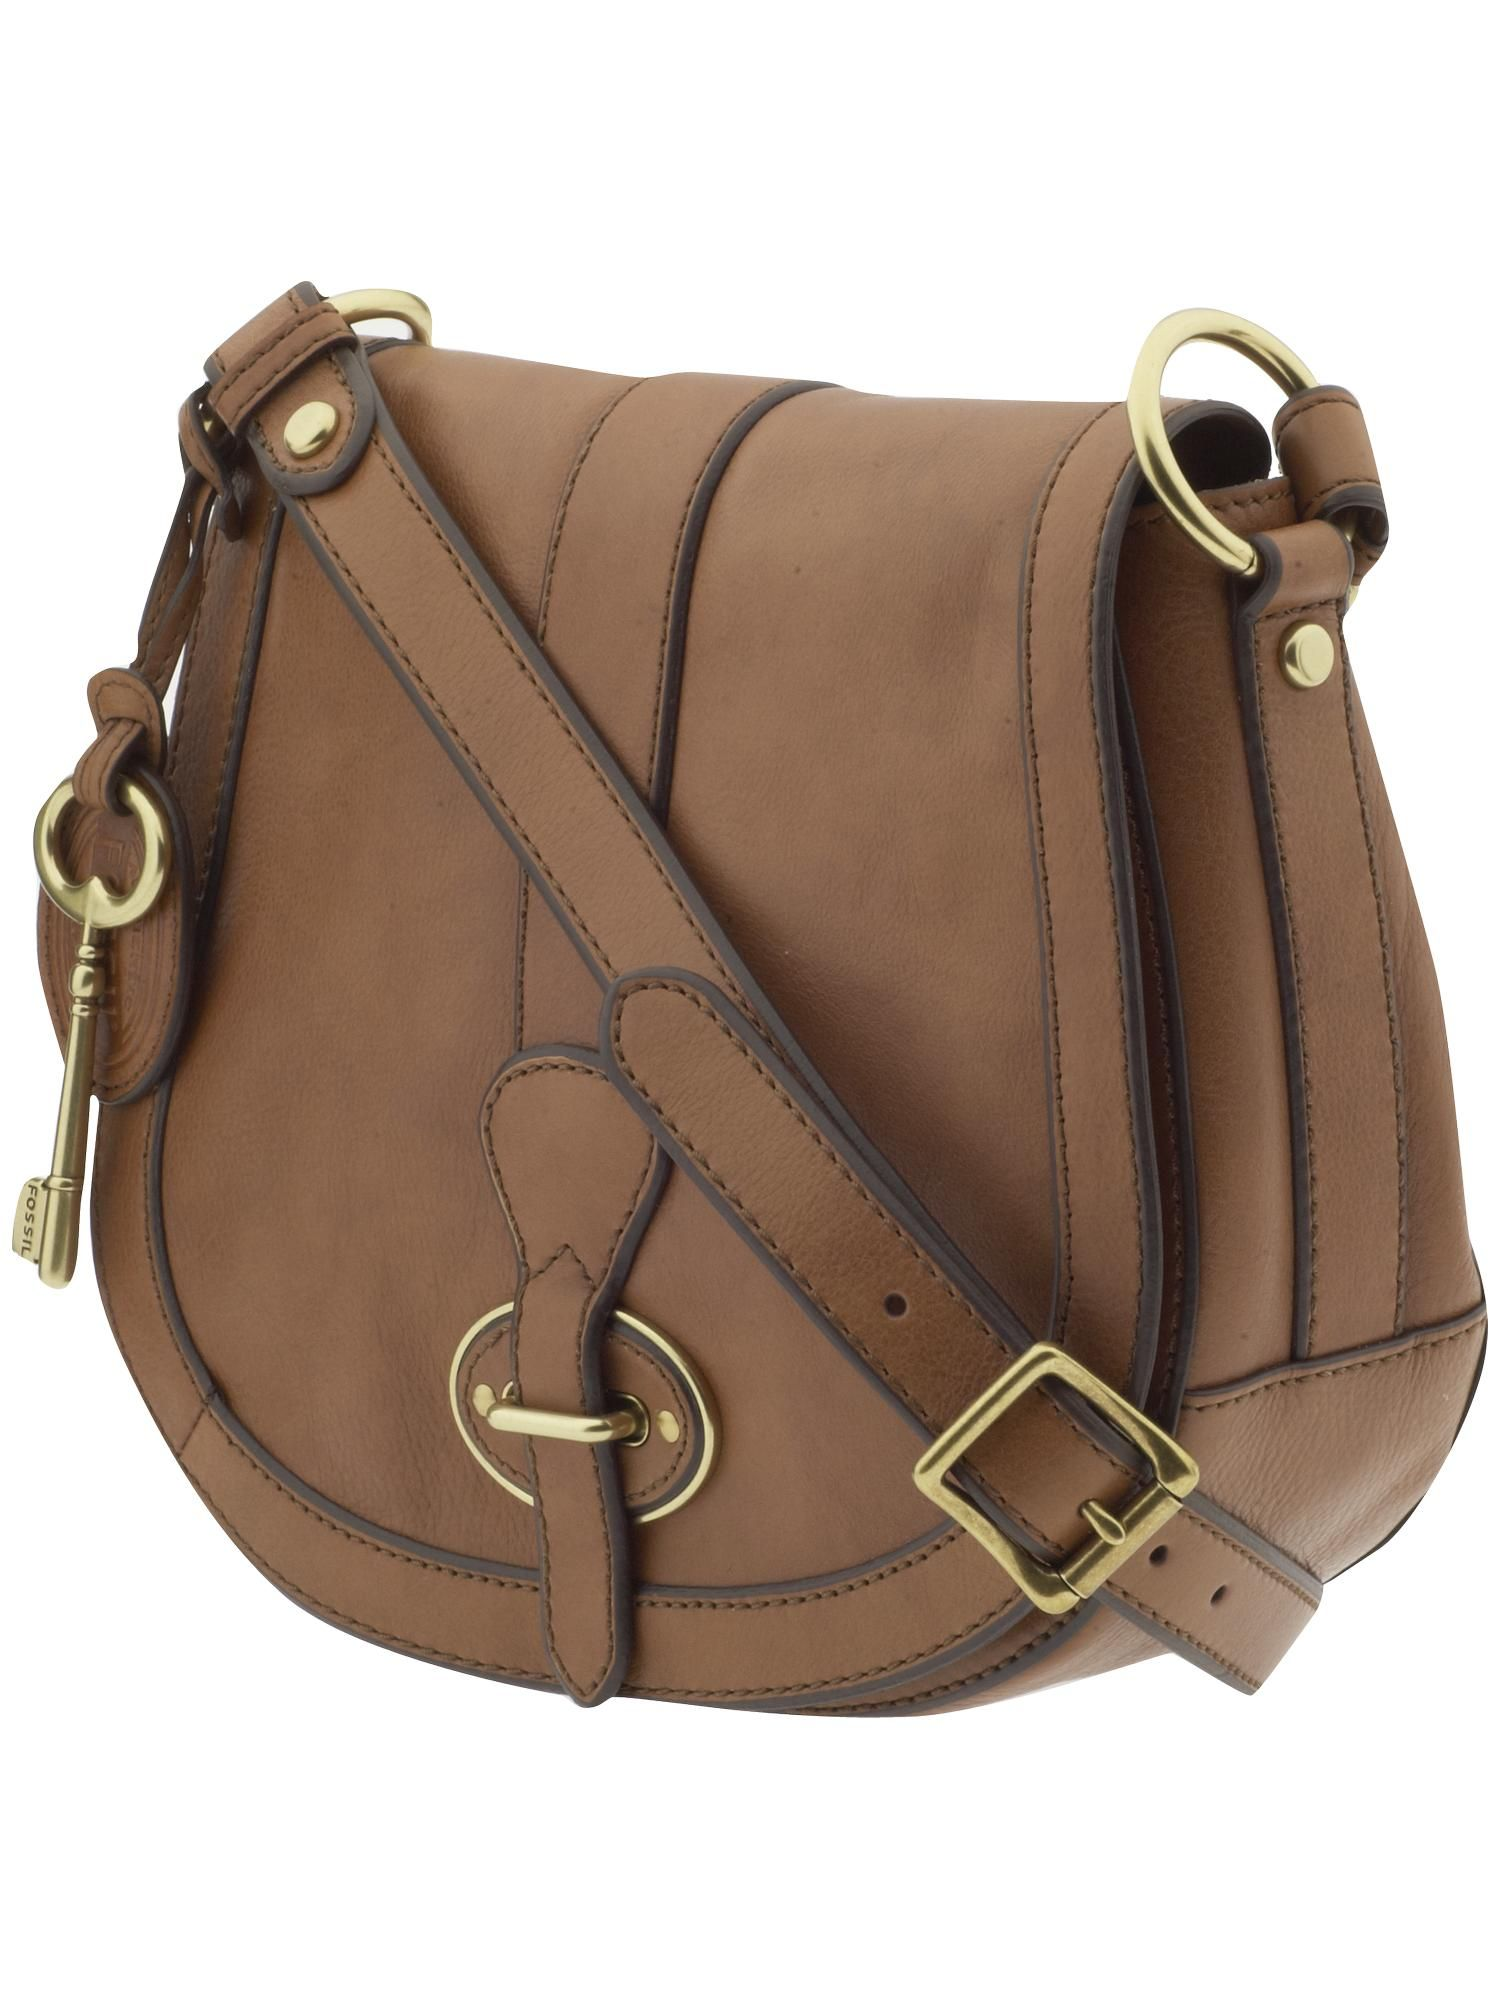 Fossil Vintage Re Issue Flap Products I Love Bags